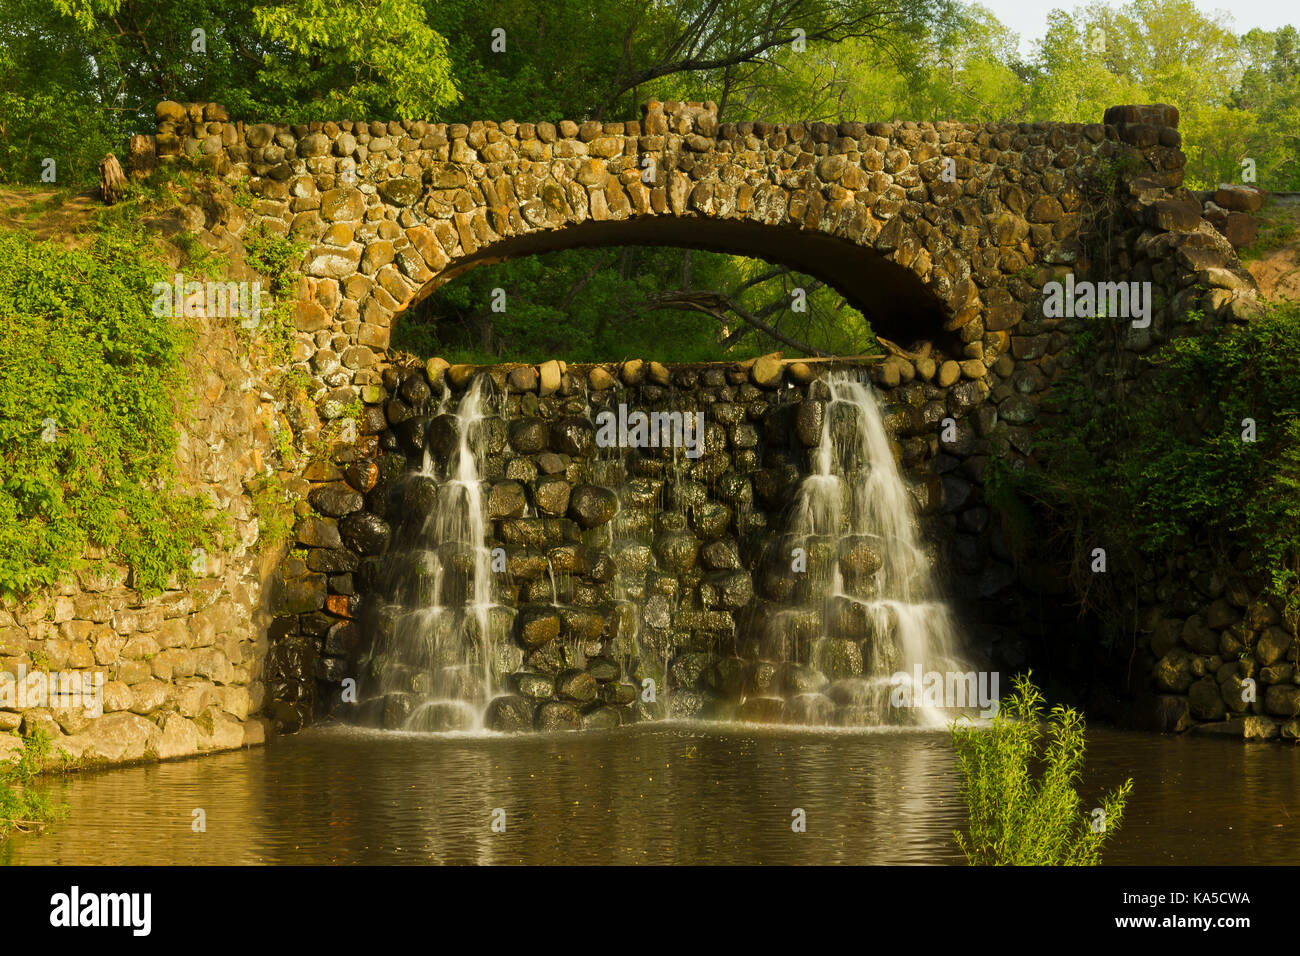 Reynolda Gardens Stock Photos & Reynolda Gardens Stock Images - Alamy